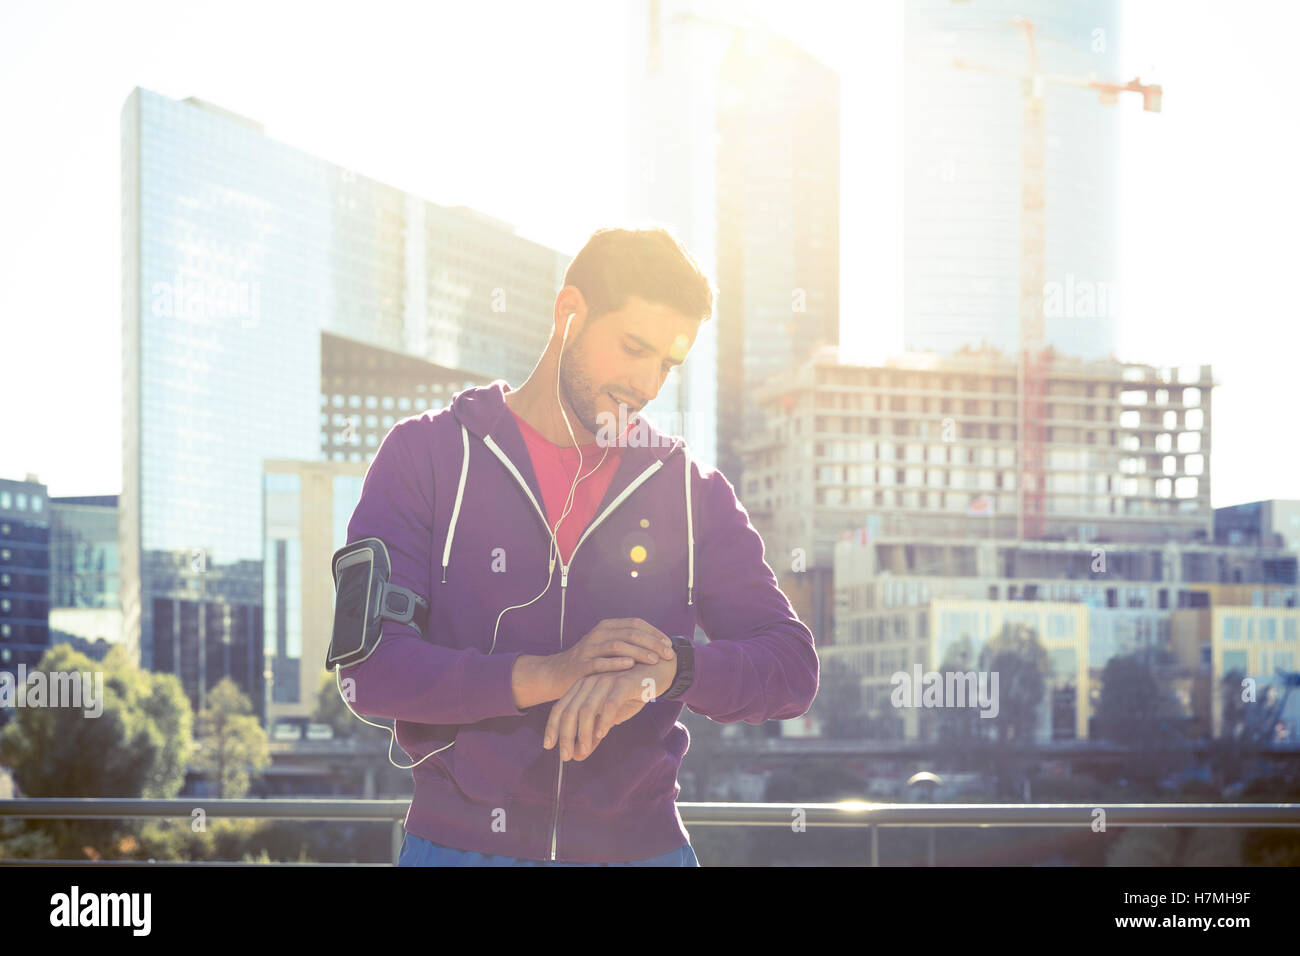 Fitness runner man checking heart rate with watch and trainer during outdoor trail running workout - Stock Image